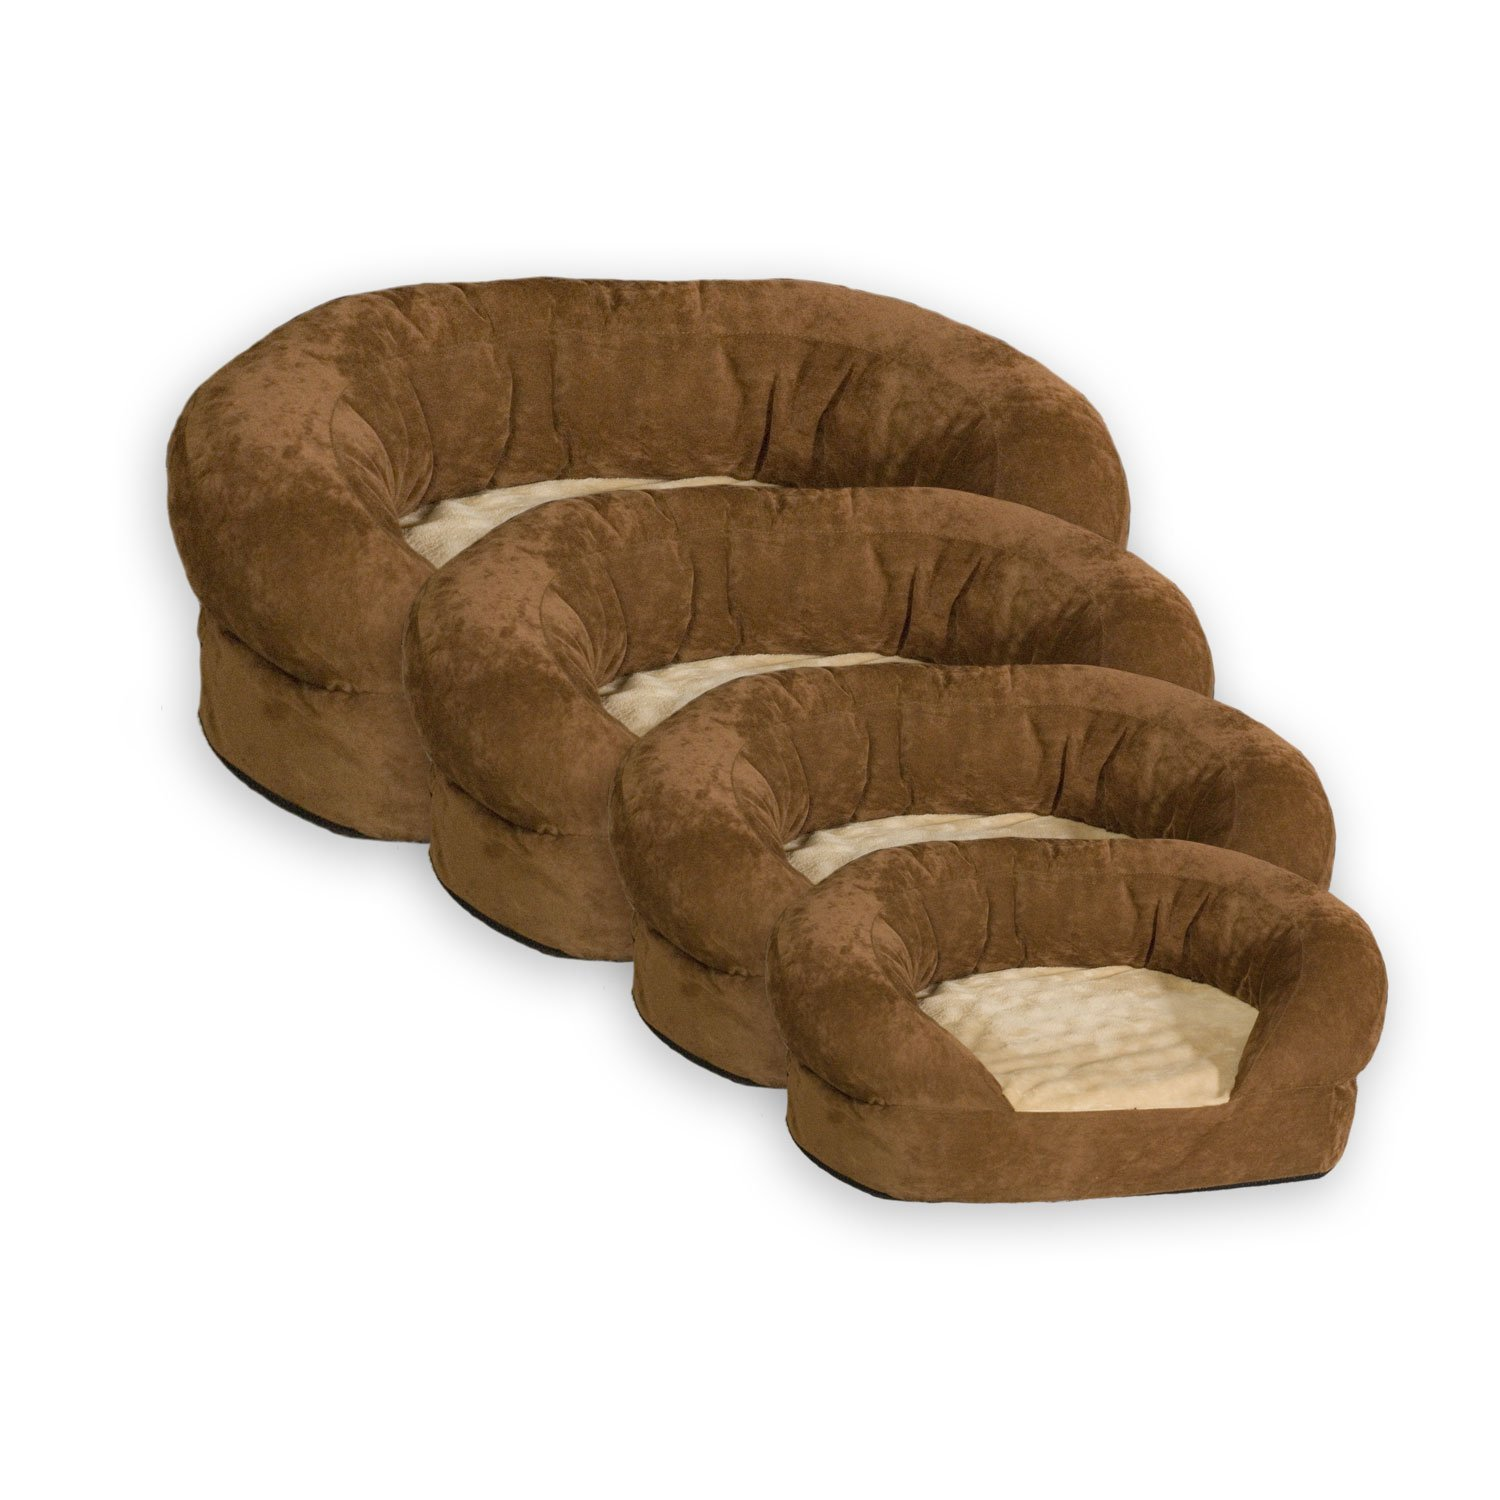 fancy dog beds furniture. Discover 4 Stylish Extra Large Dog Beds Fancy Furniture G